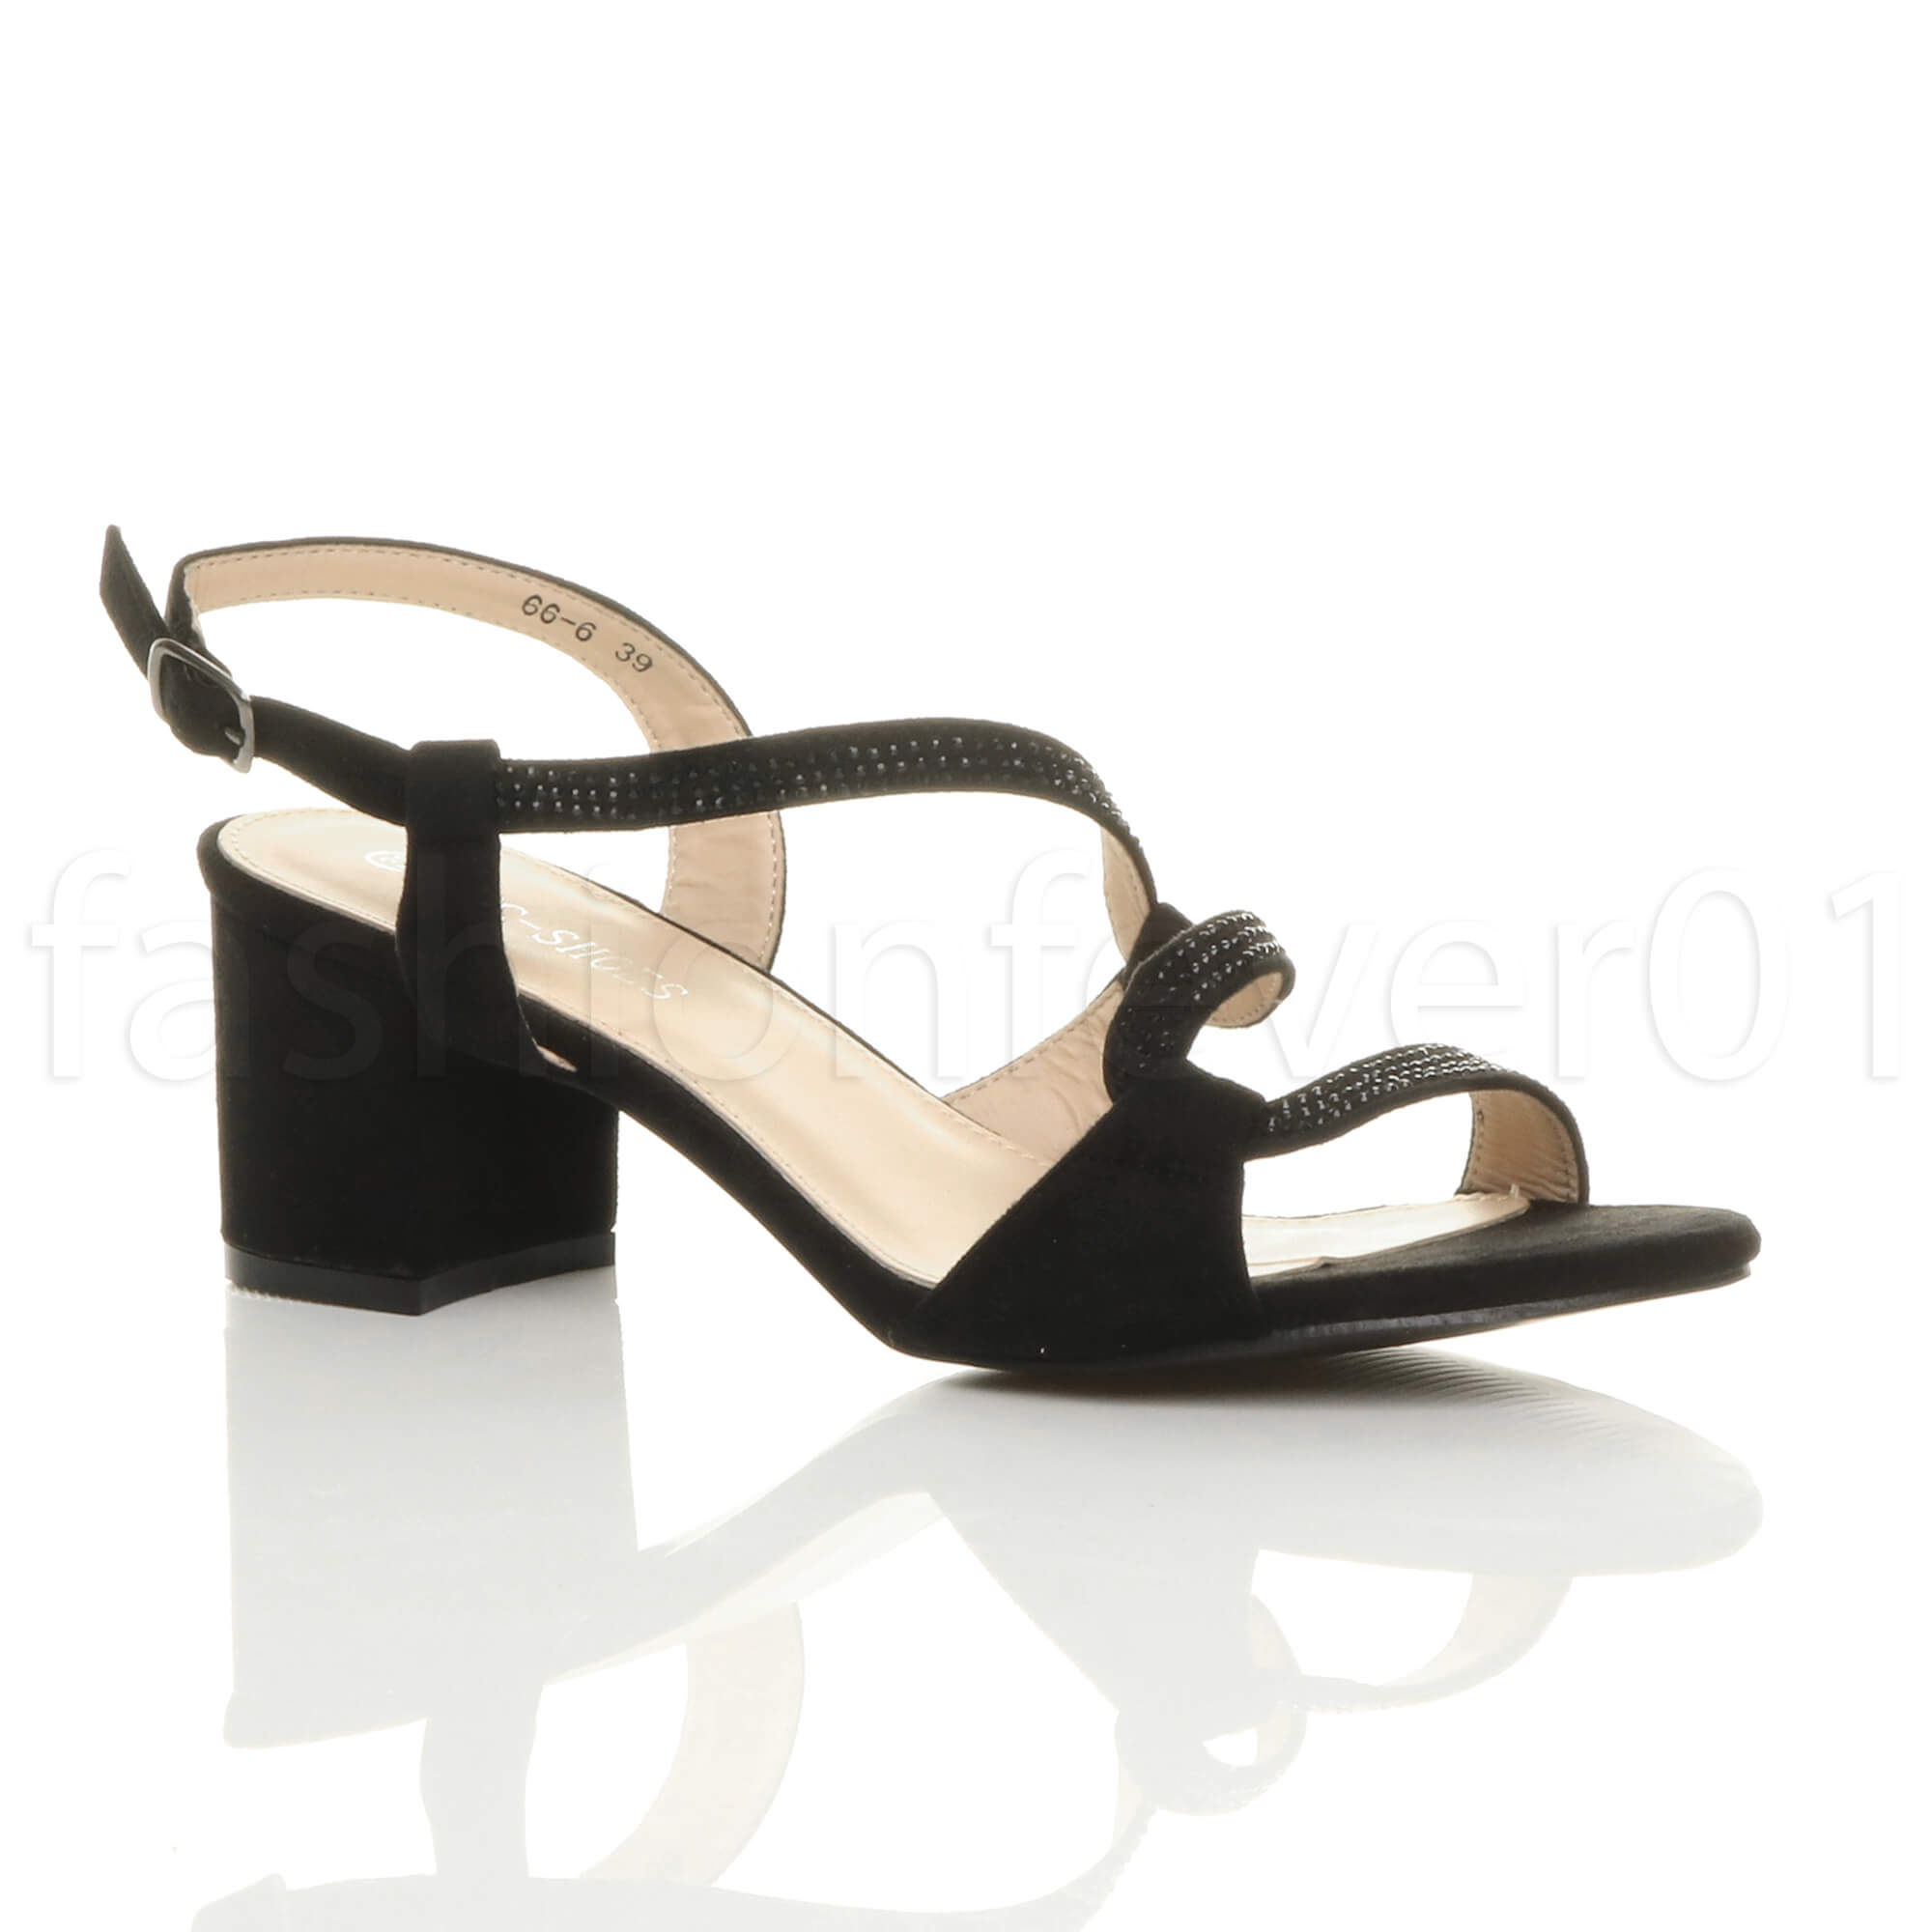 1e4a700a787 WOMENS LADIES MID BLOCK HEEL CUT OUT STRAPPY SLINGBACK PARTY SANDALS SIZE 6  39